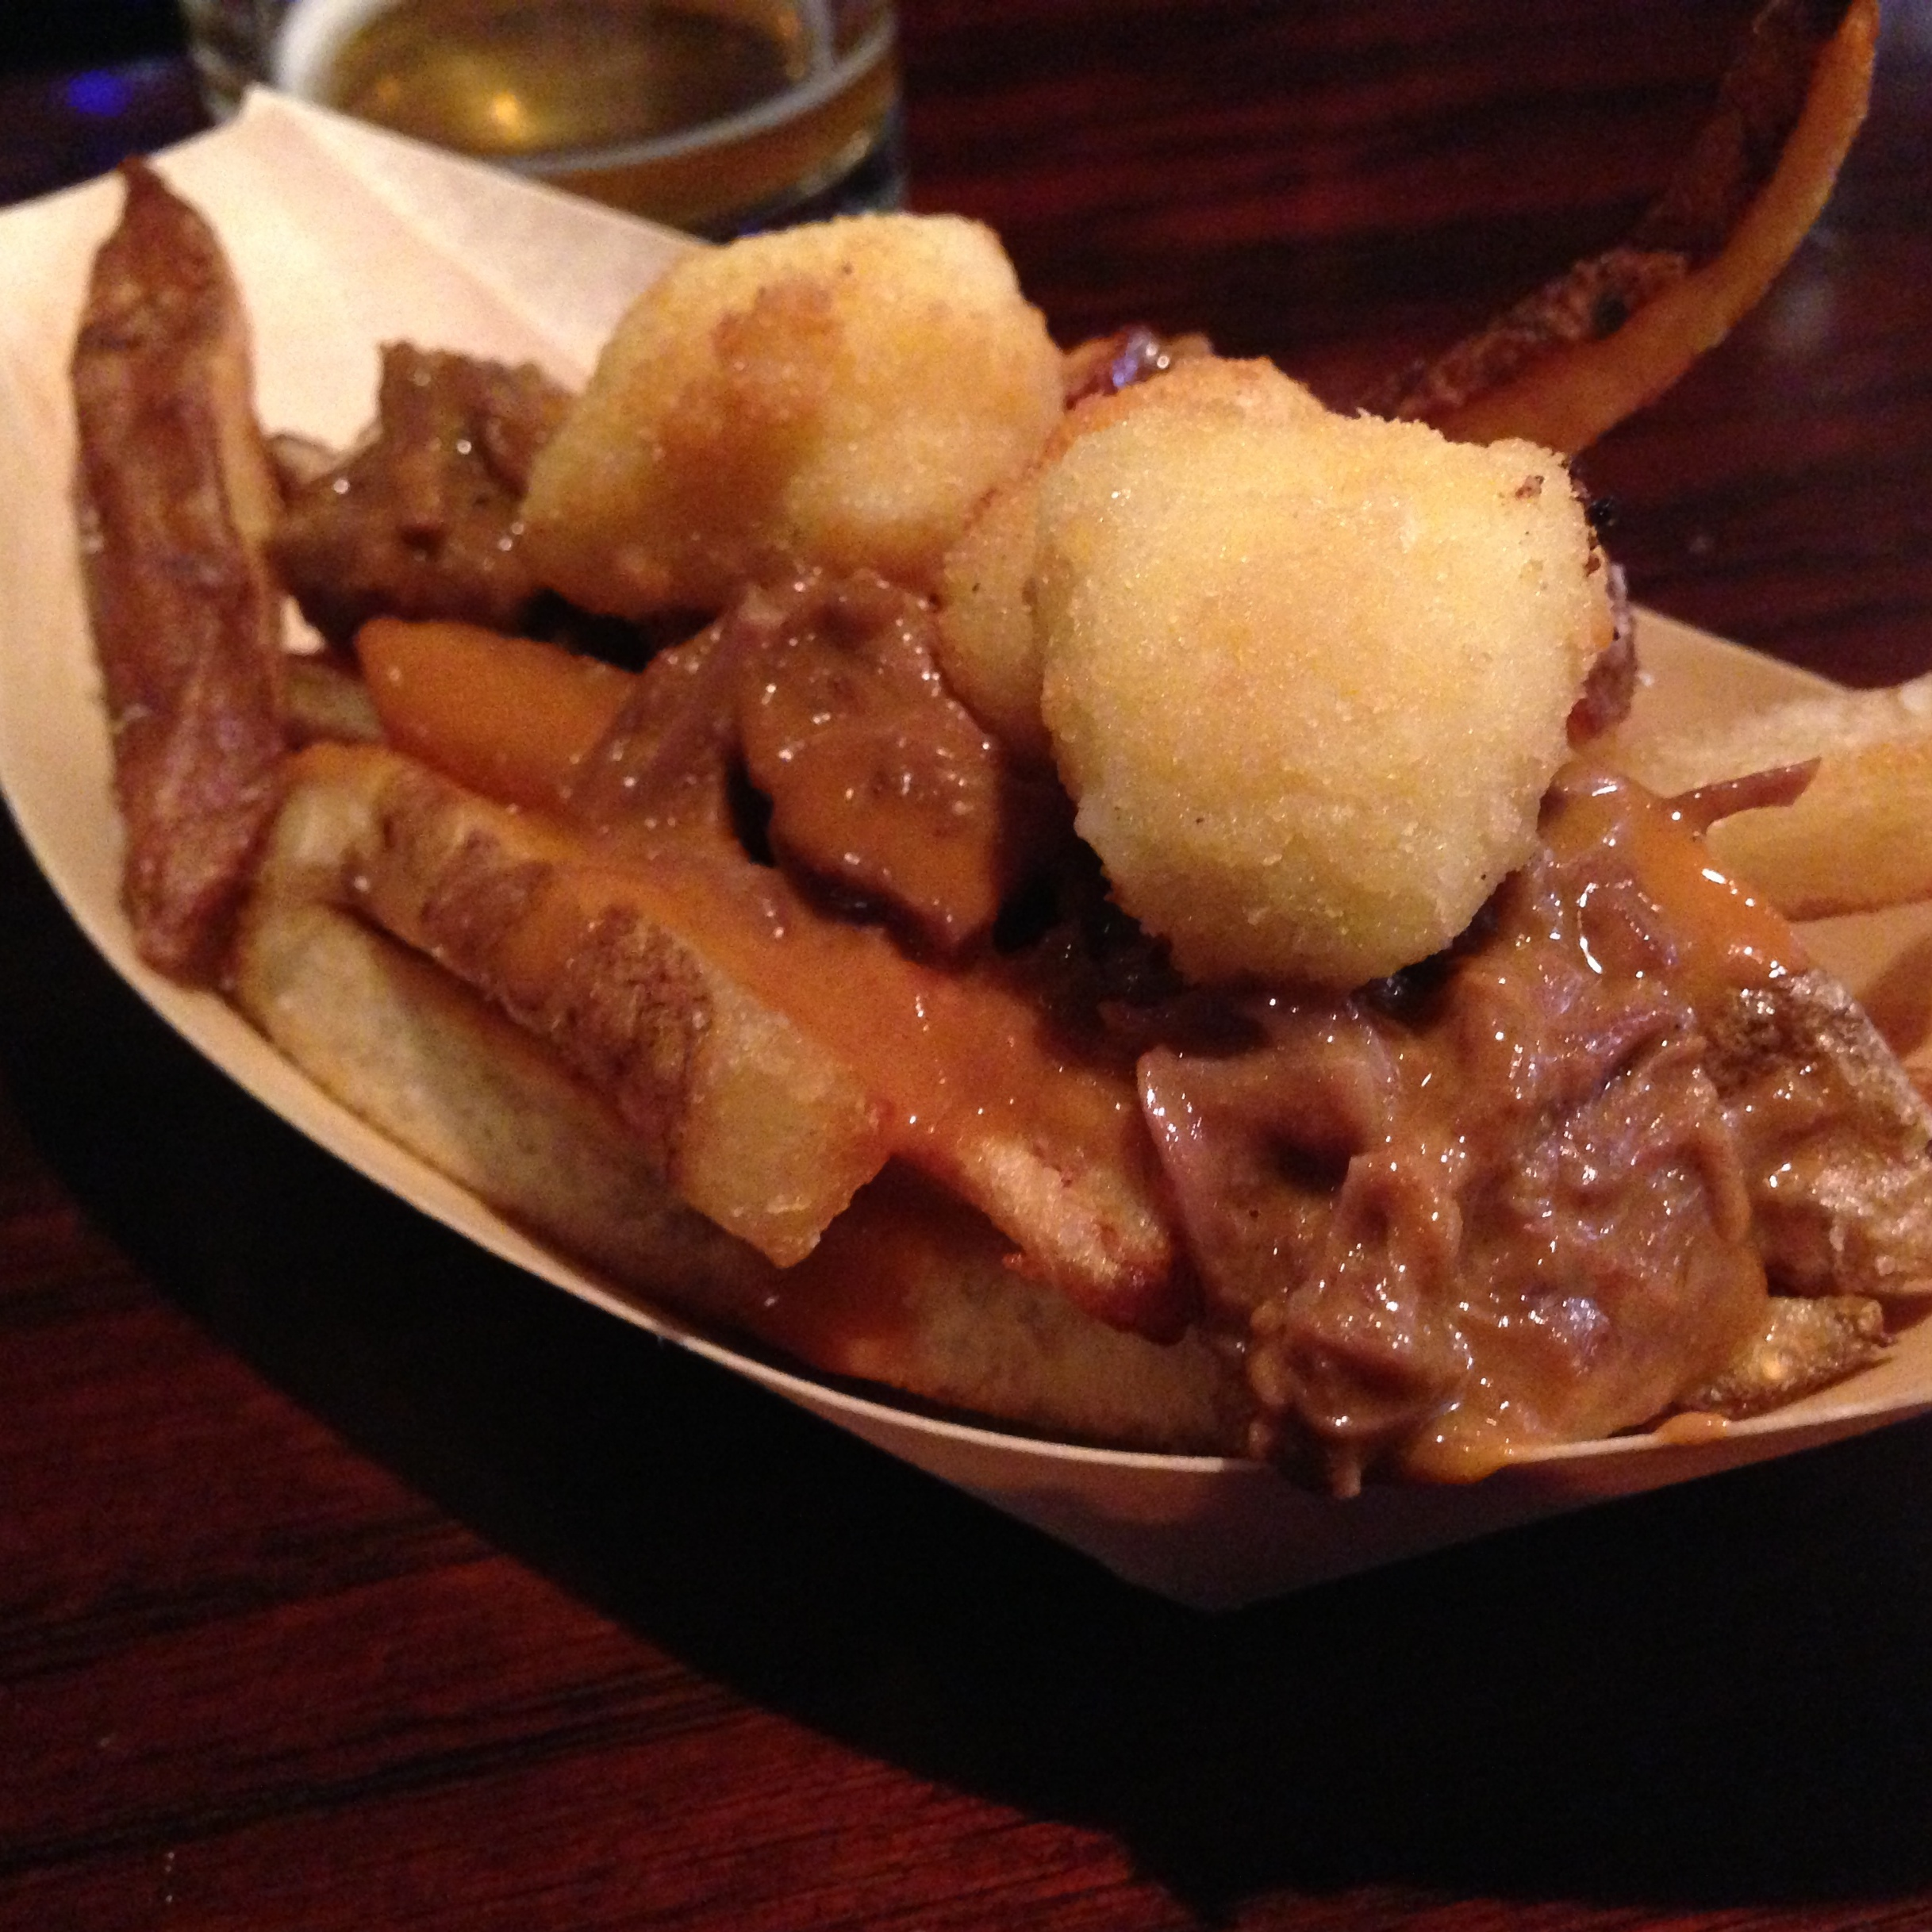 Little Market's poutine served in its traditional dish, a seven-passenger boat.